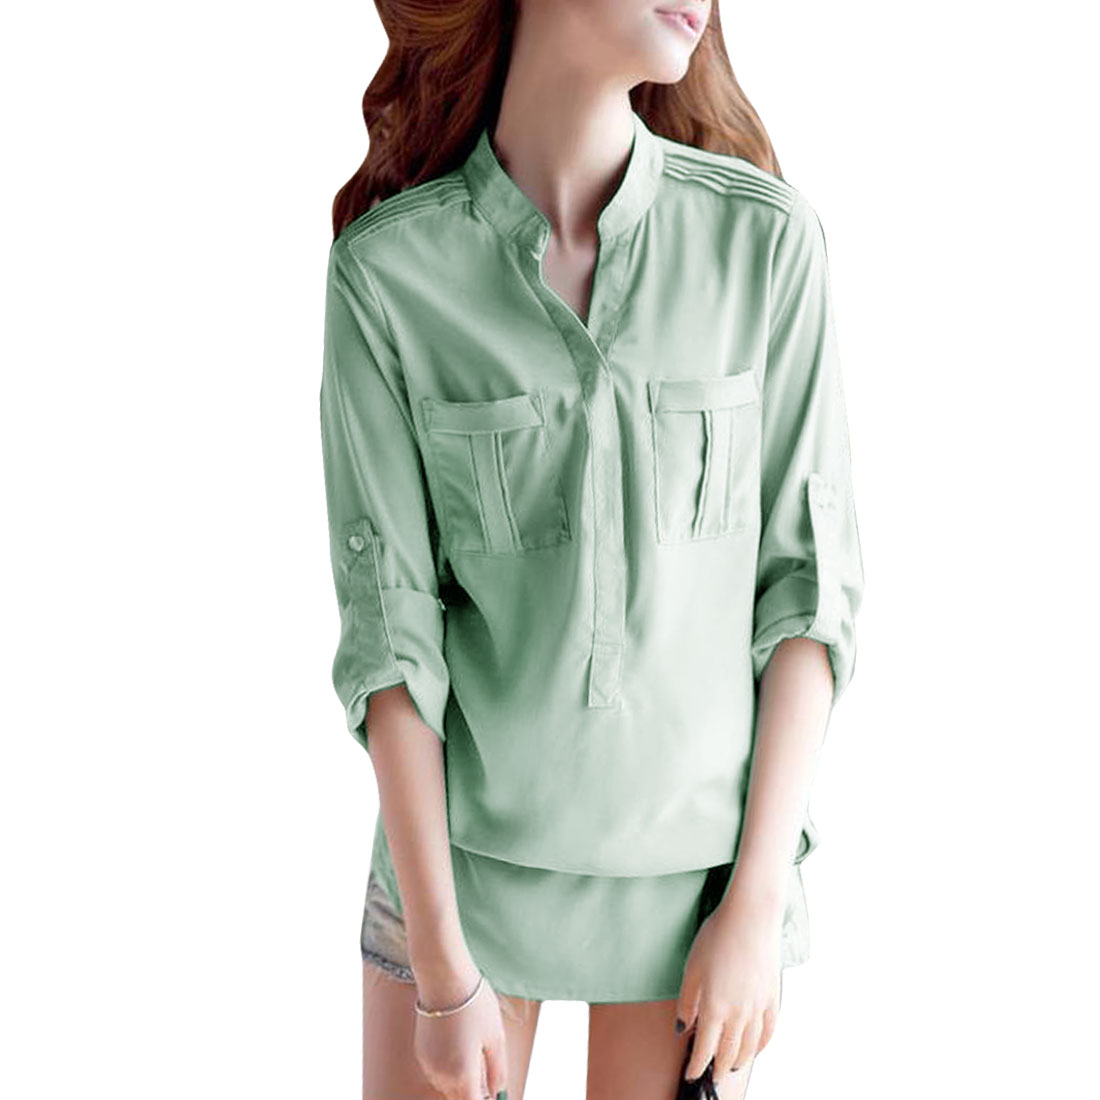 Ladies Chiffon Stand Collar Buttoned Front Long Shirt Light Green S